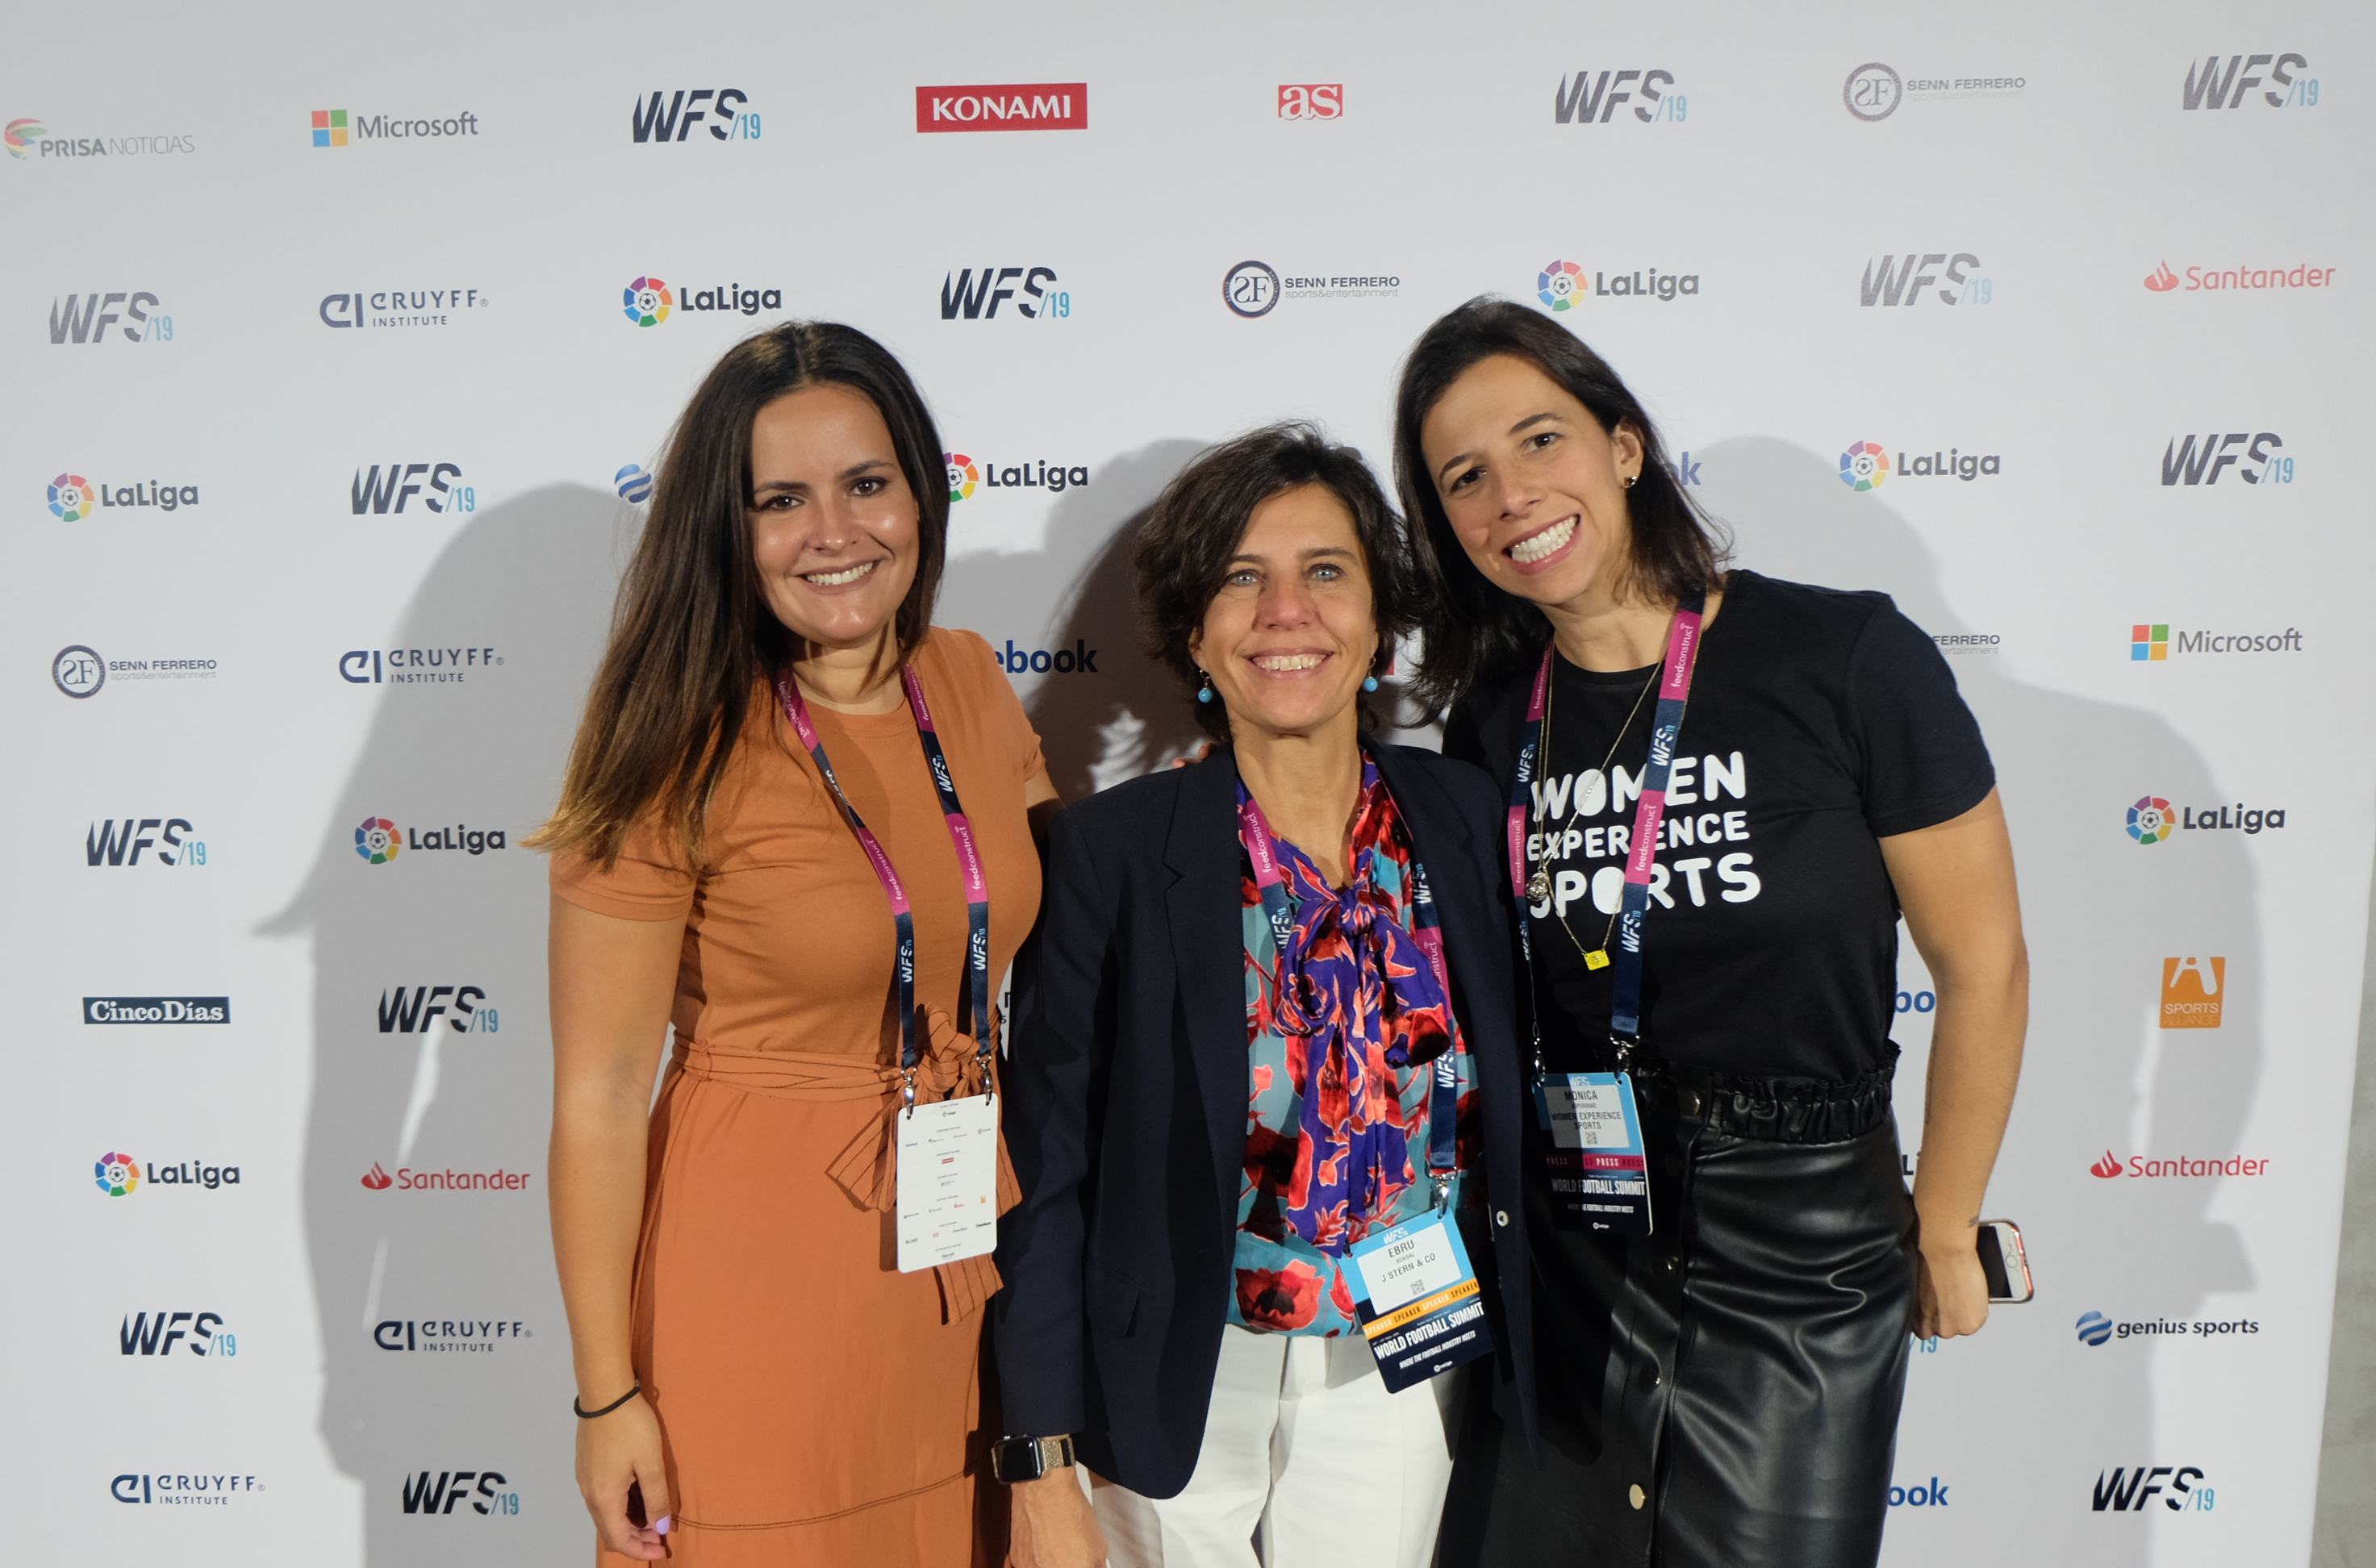 Las mujeres del World Football Summit 2019